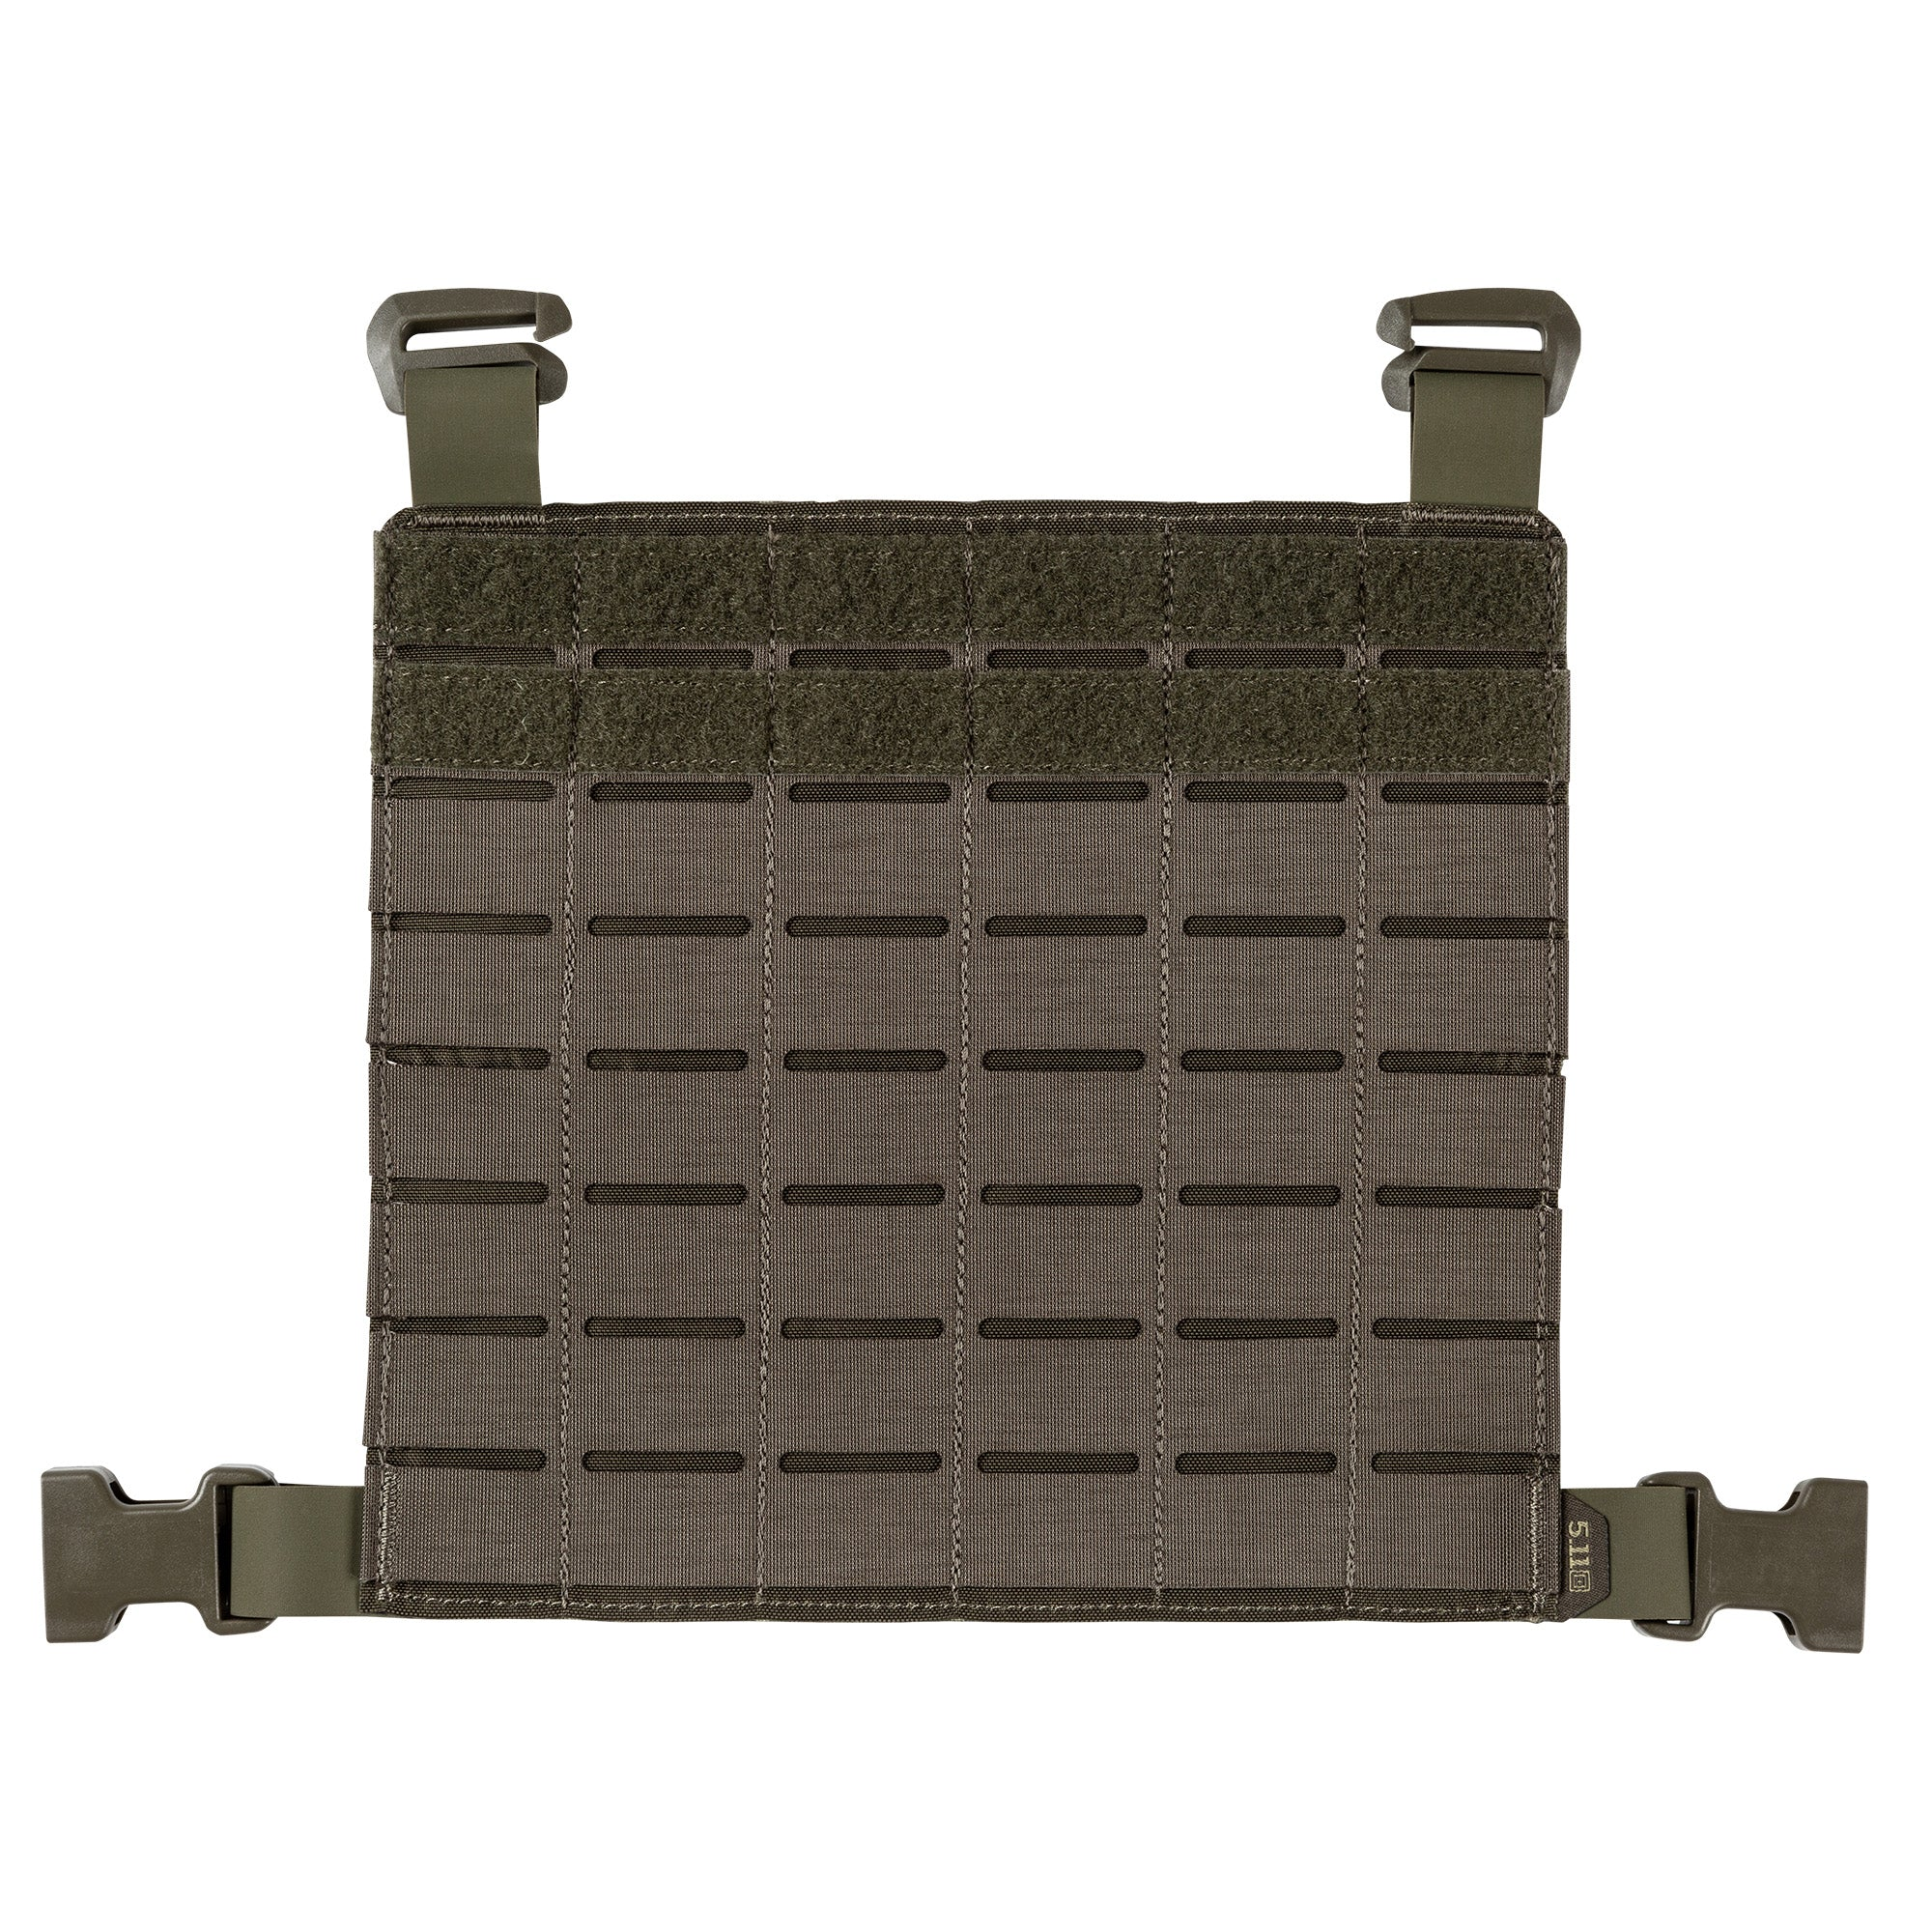 LASER CUT MOLLE GEAR SET